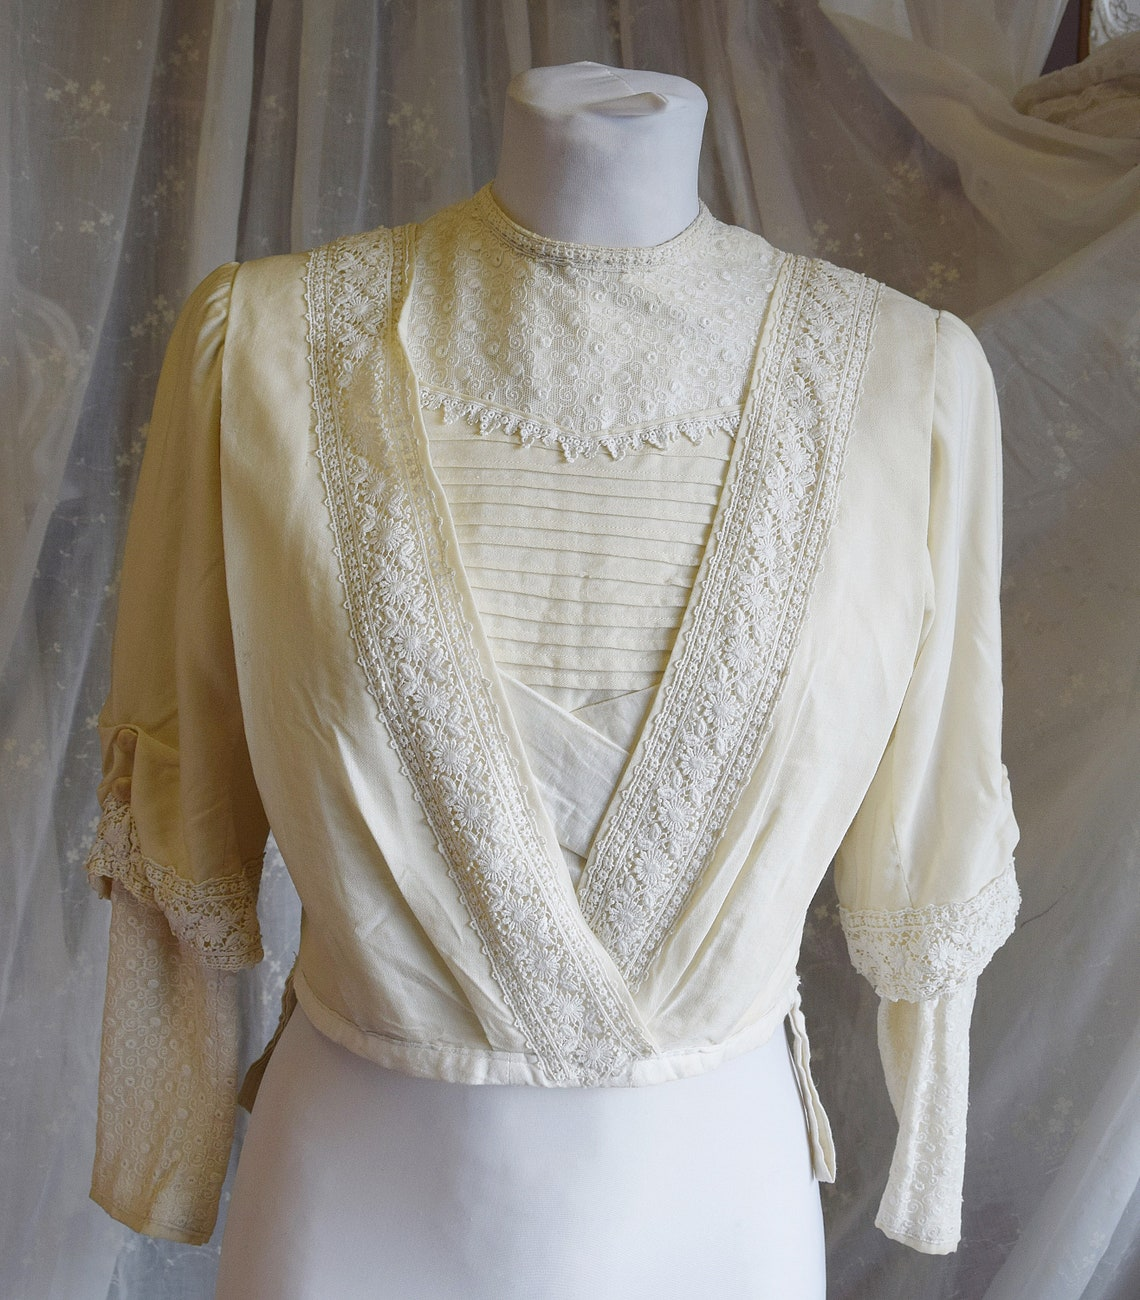 Antique Edwardian Cream Wool Bodice With Lace And Silk Trim 34 Bust 25 Waist